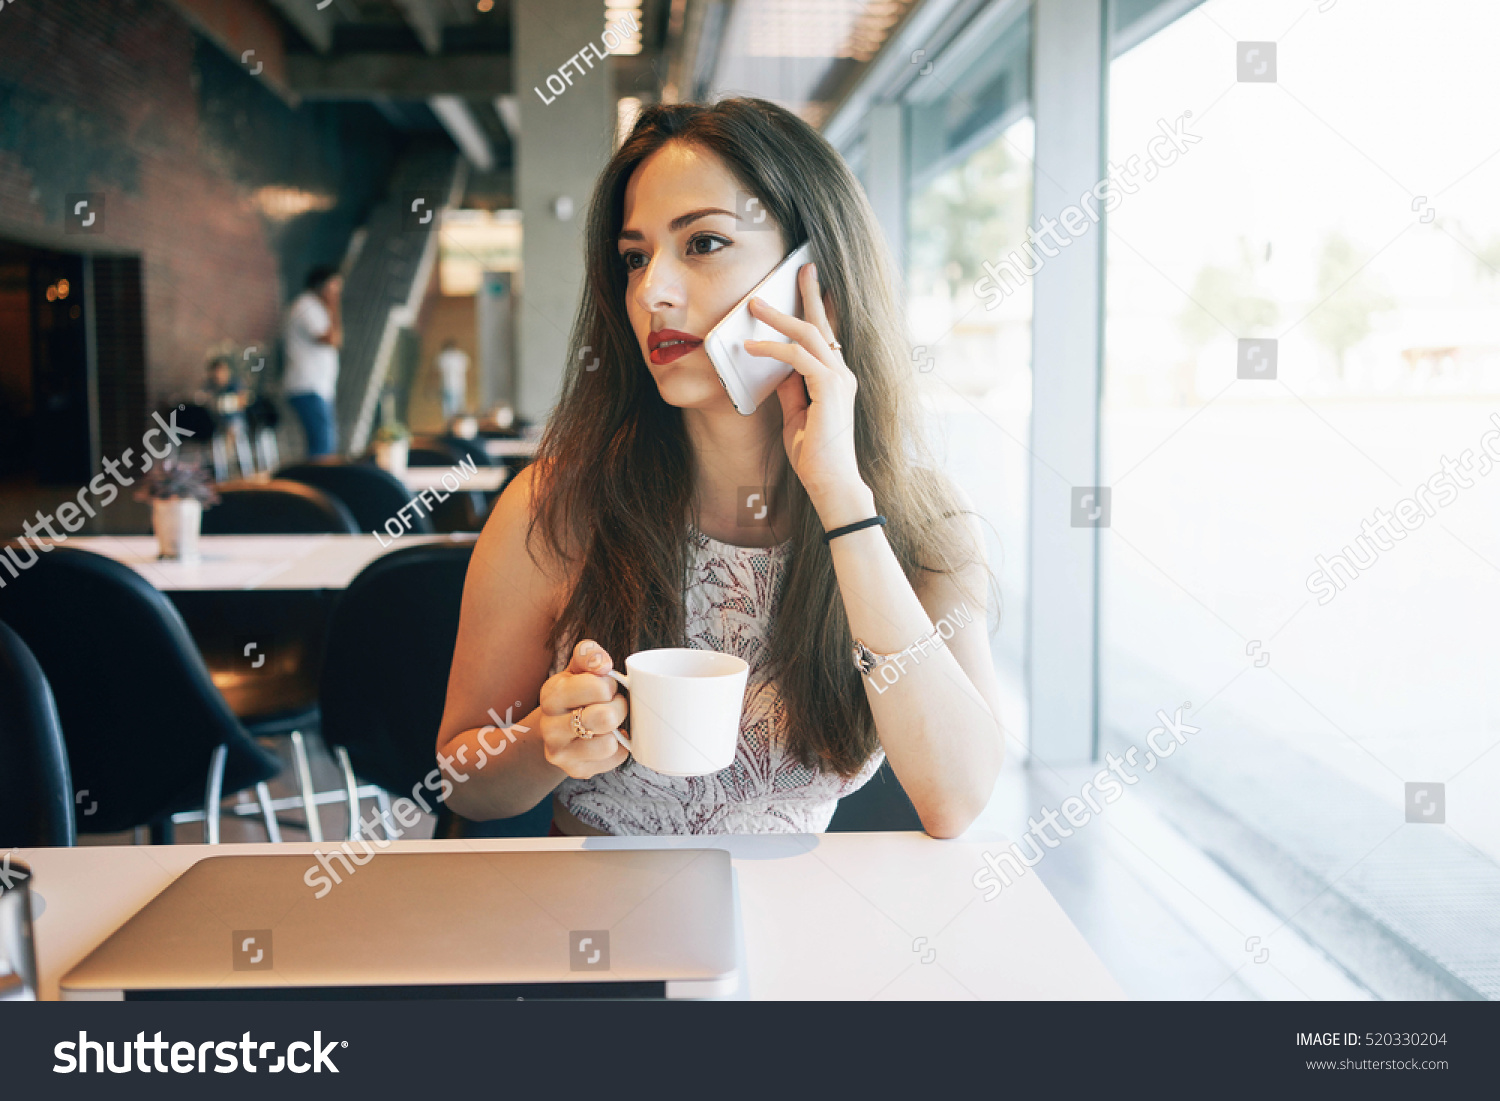 A caucasian female freelancer is talking on a phone while sitting in a cafe with a portable computer on a table Young attractive business woman is making a business call during the lunch break